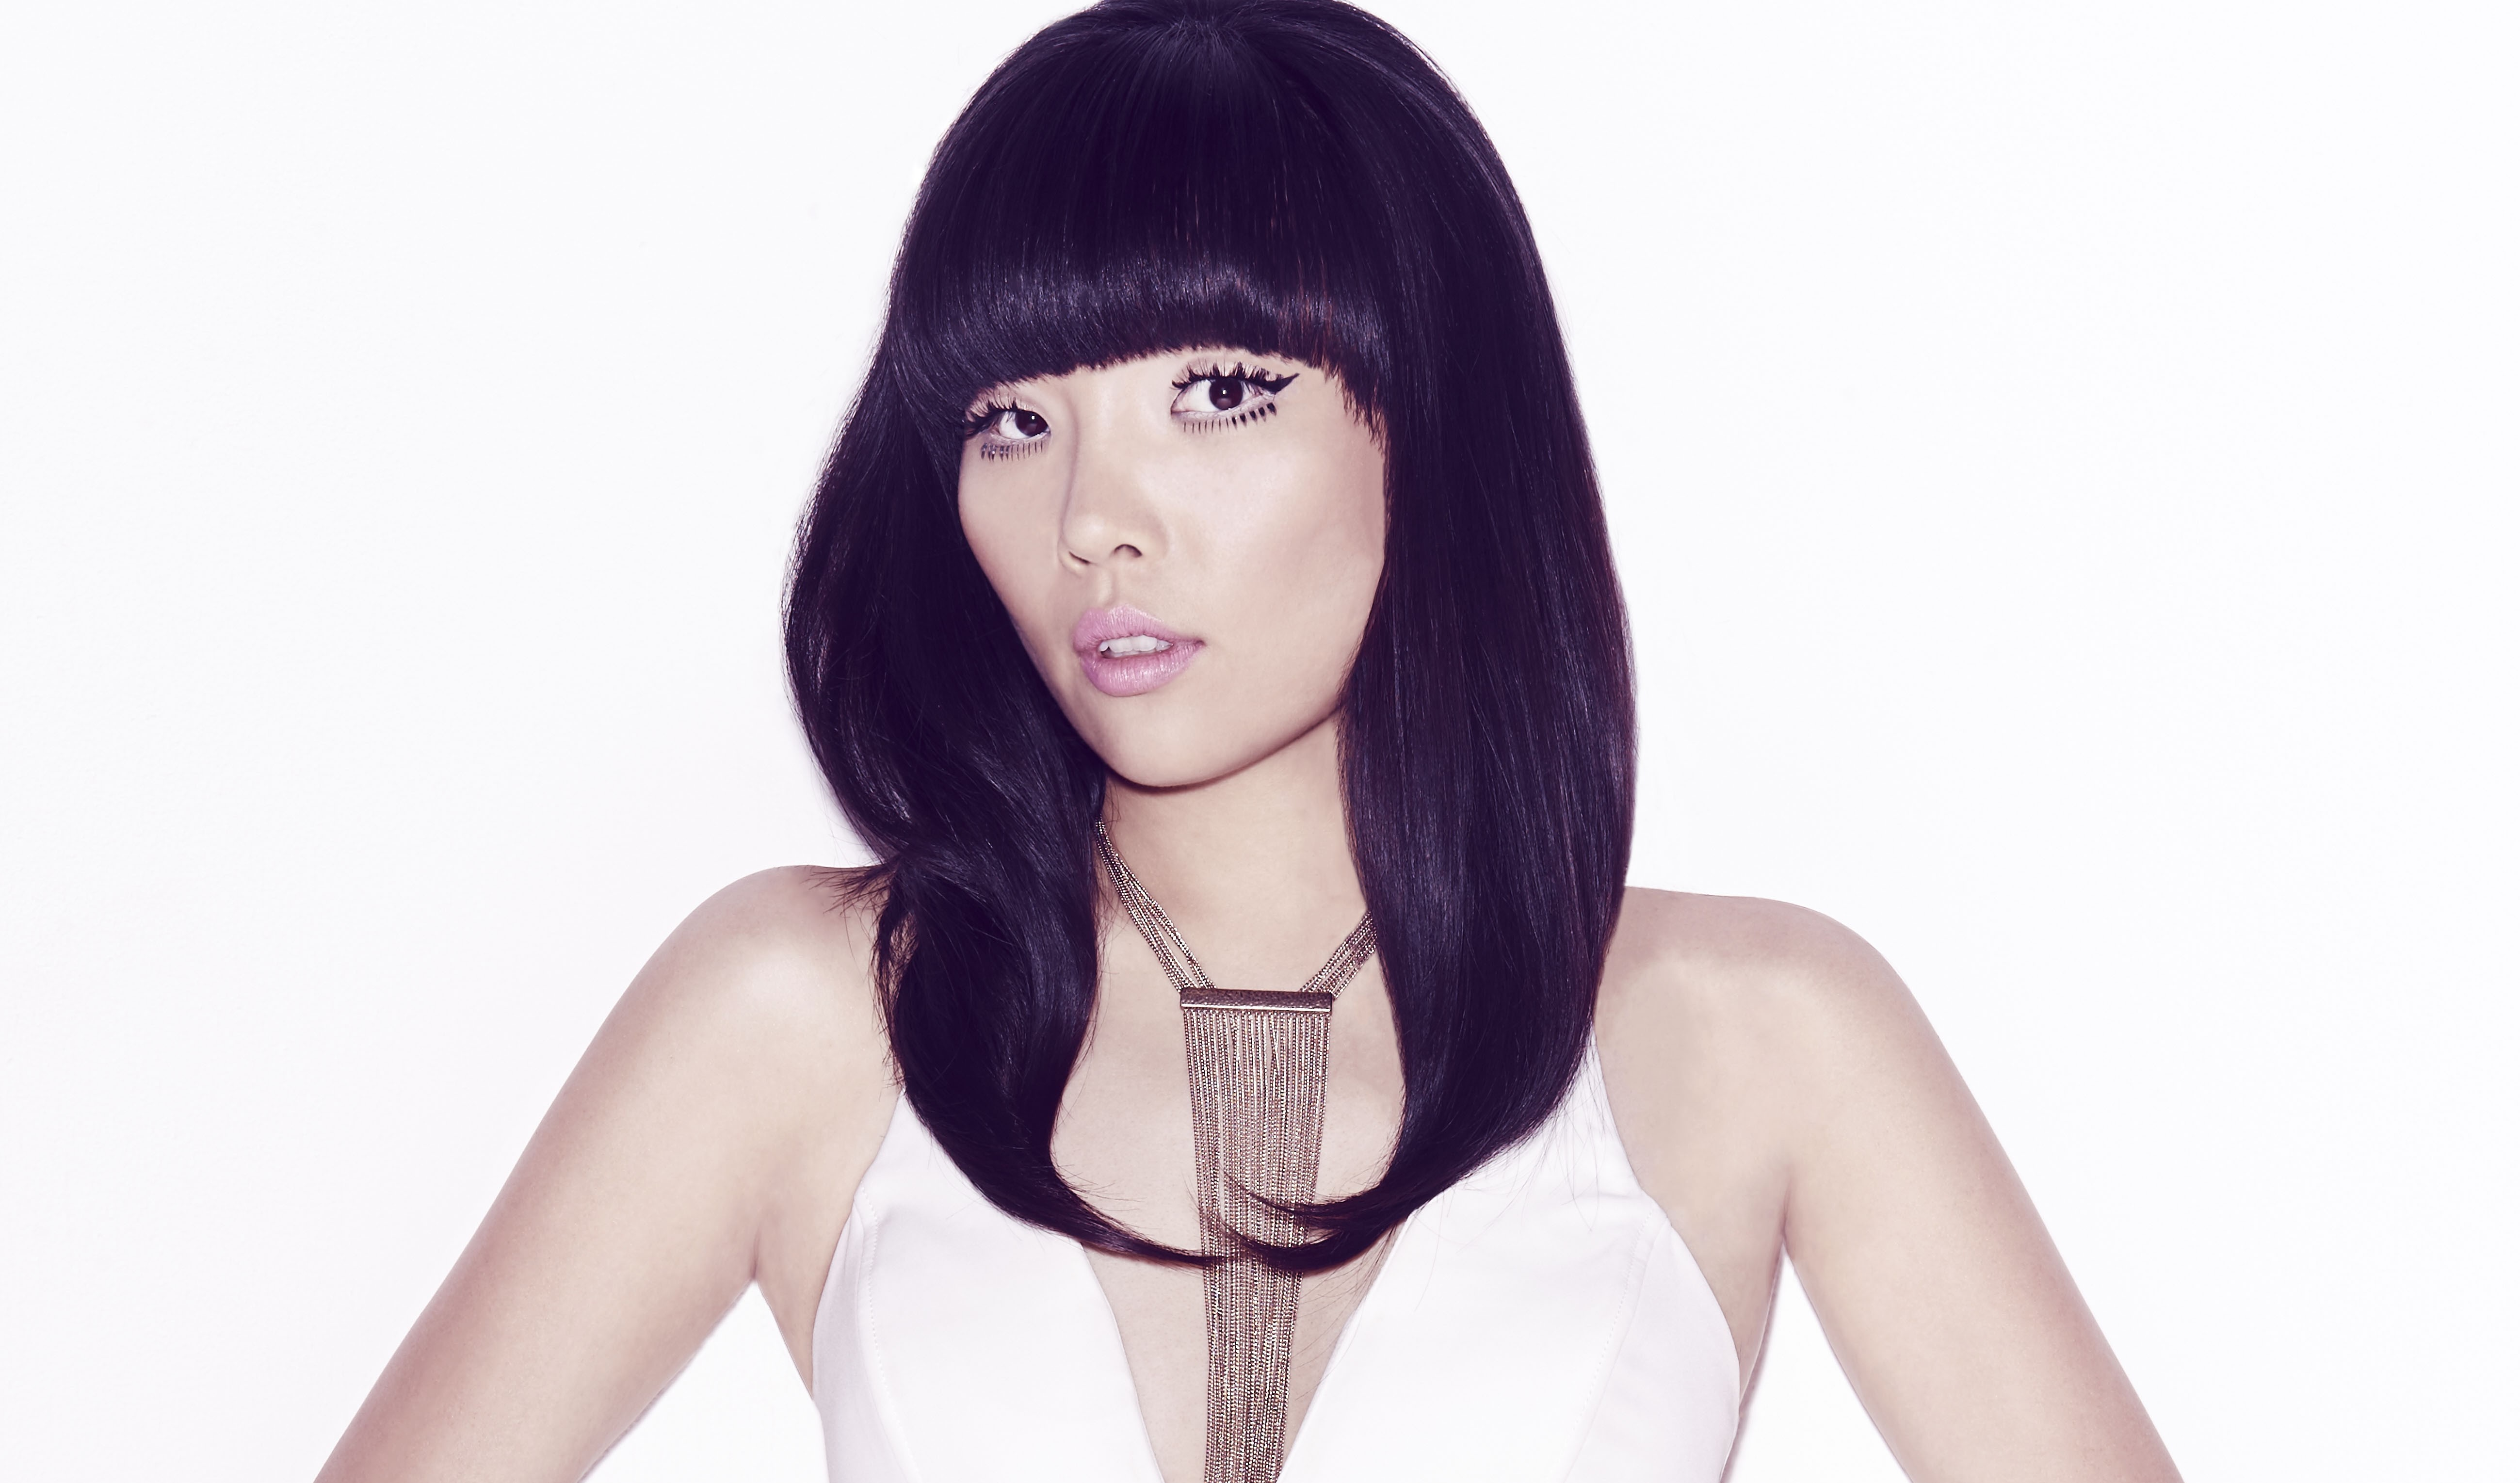 Dami Im reflects on her Eurovision success, influence of The Carpenters, national tour and new album